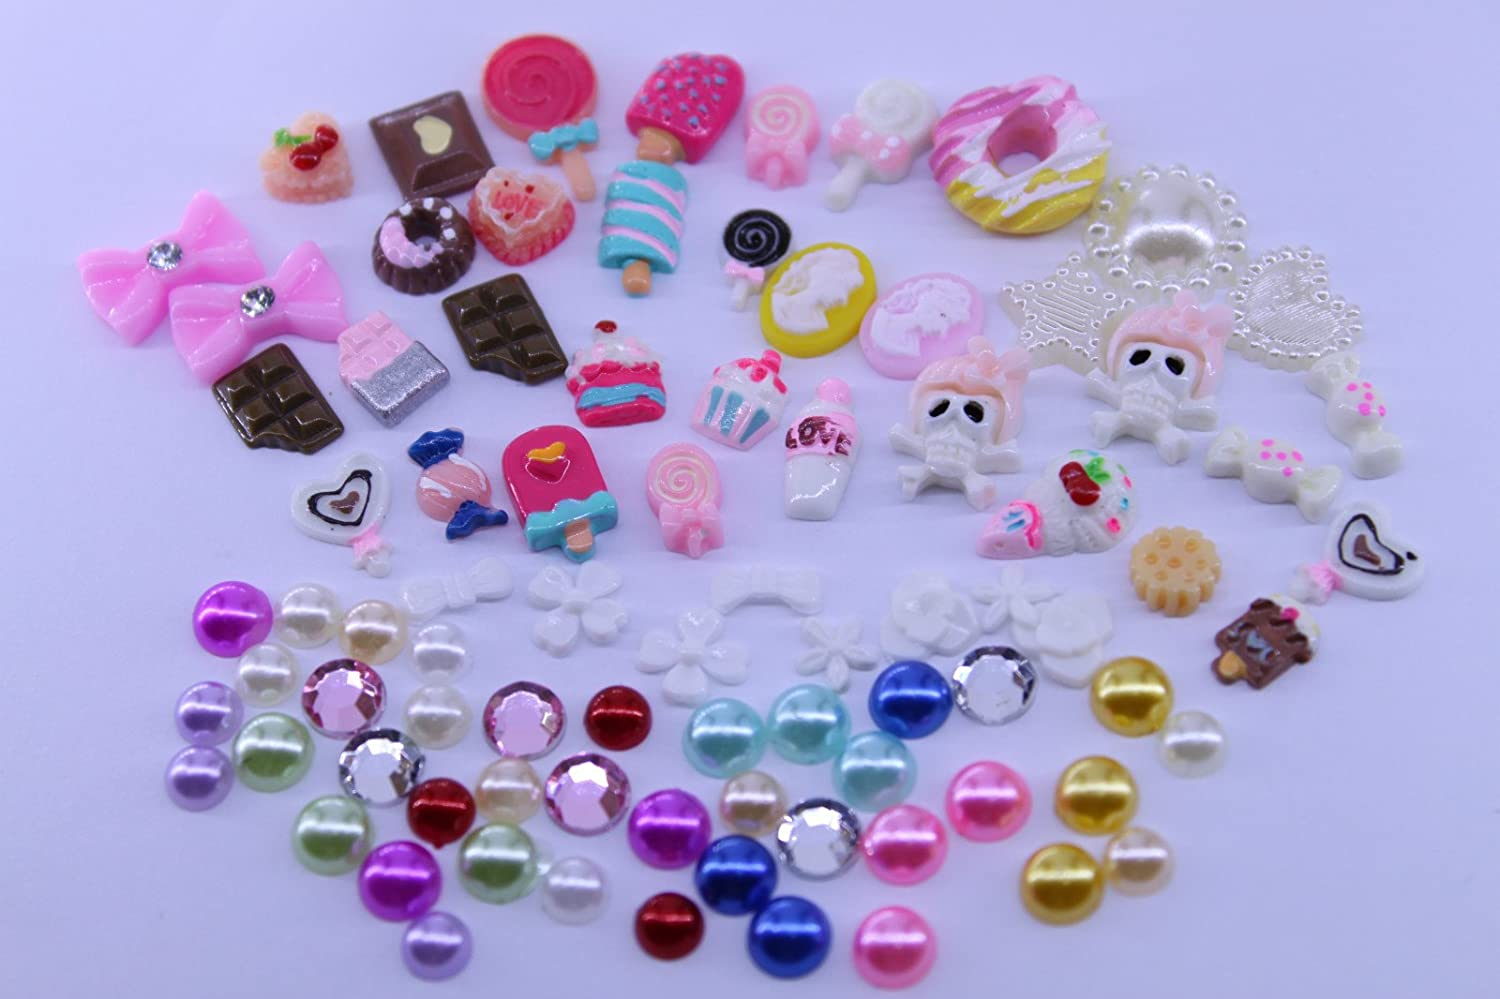 100pcs Candy 3D Nail Art Decal Pearl Chocolate Cake Ice Cream Lollioio Donut by Etopsell